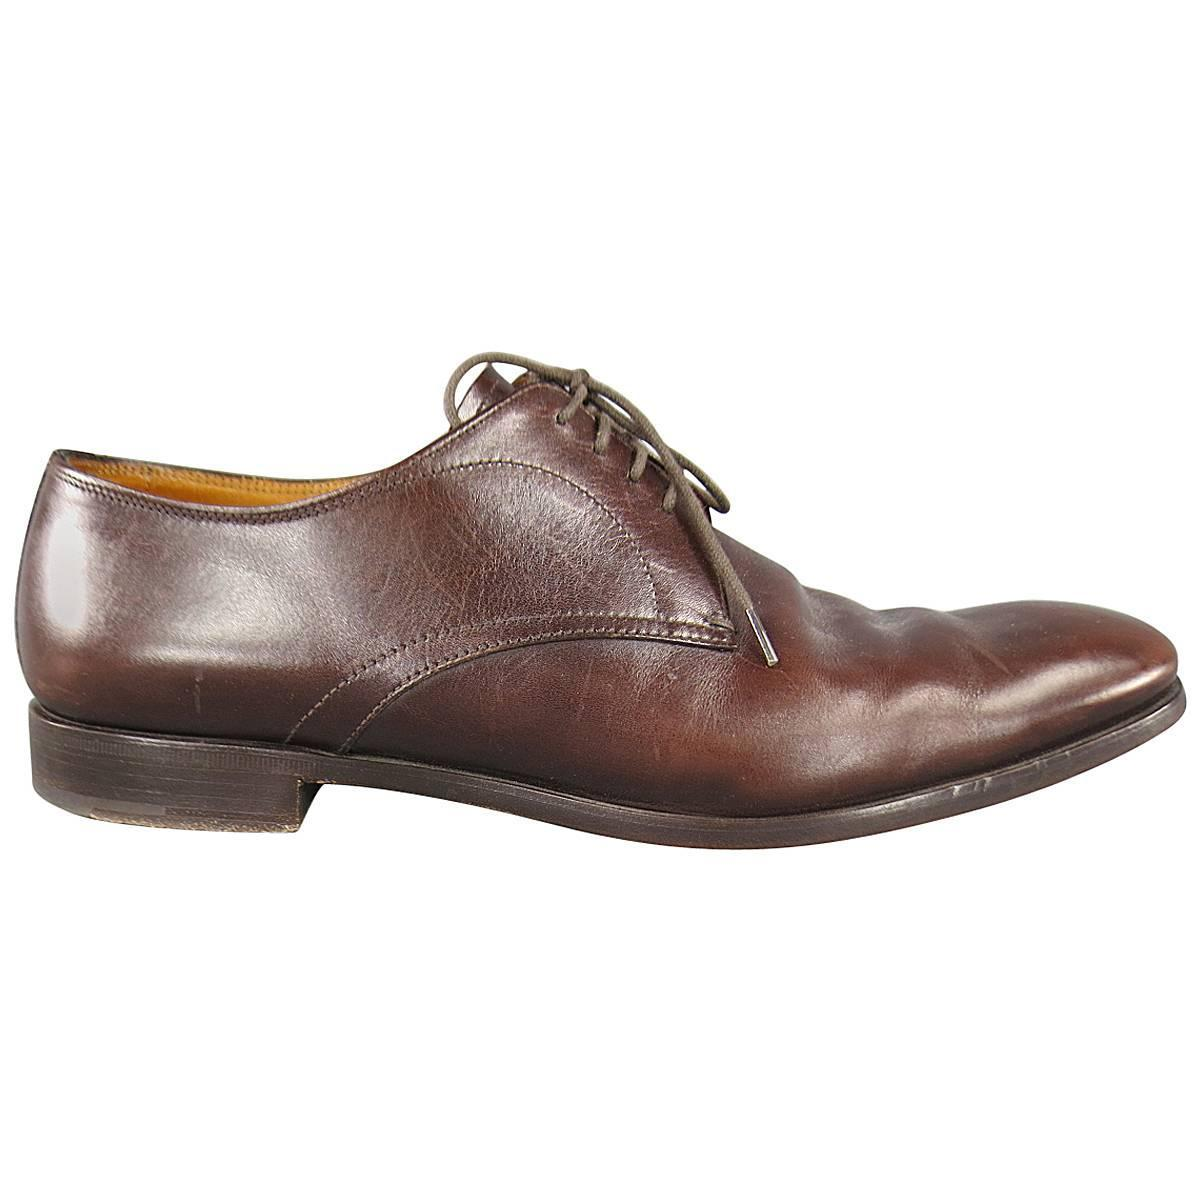 prada size 11 5 brown leather lace up dress shoes at 1stdibs